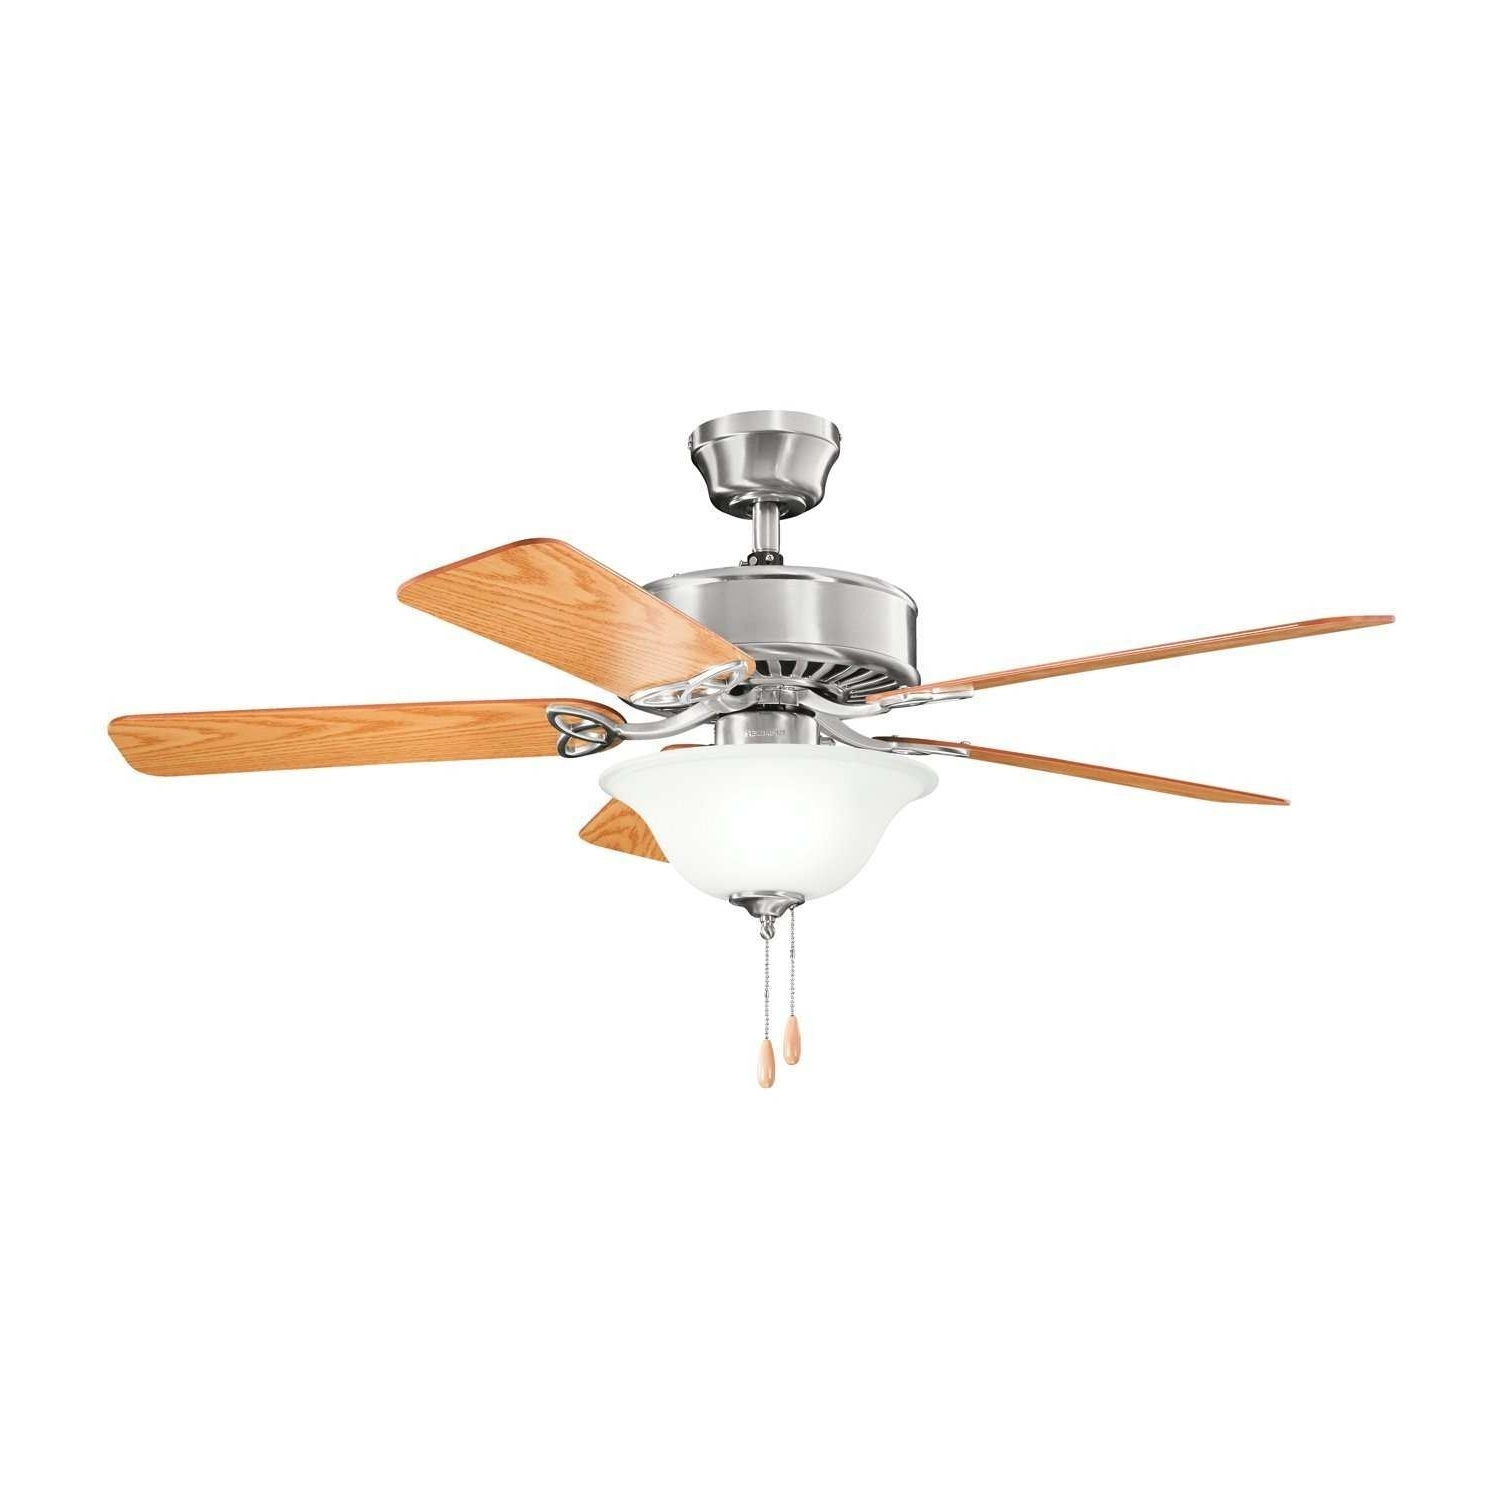 Latest Outdoor Ceiling Fans With Metal Blades Elegant Kichler Mwh 50 Pertaining To Outdoor Ceiling Fans At Amazon (View 20 of 20)